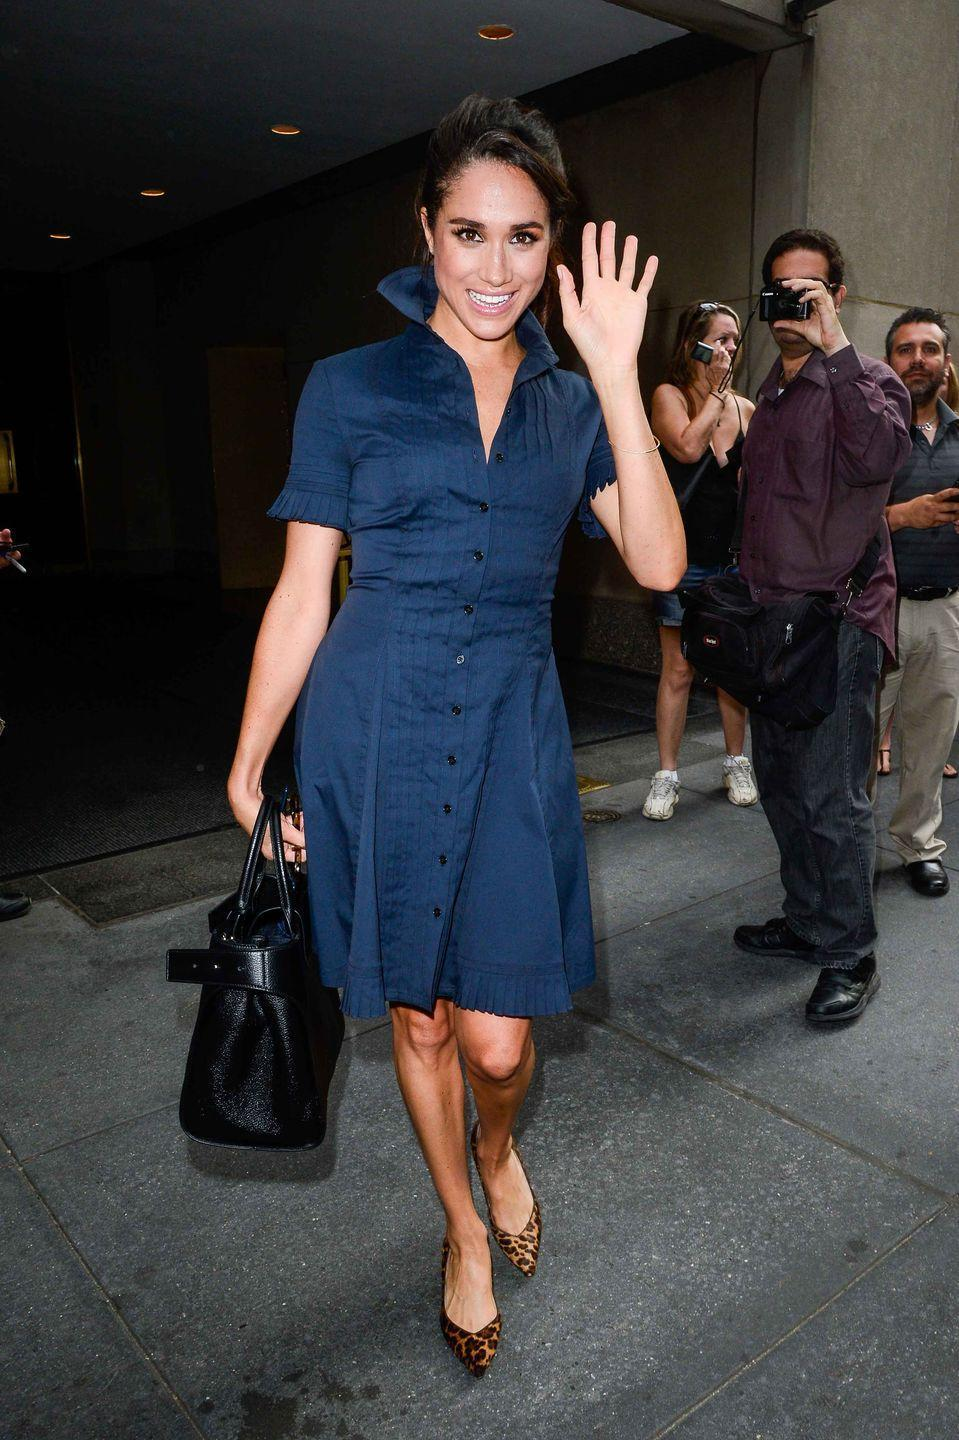 """<p>She looks polished in a classic navy dress with <a href=""""https://go.redirectingat.com?id=74968X1596630&url=https%3A%2F%2Fwww.sarahflint.com%2Fproducts%2Femma-chocolate-leopard%3Fvariant%3D37841859521&sref=https%3A%2F%2Fwww.townandcountrymag.com%2Fstyle%2Ffashion-trends%2Fg3272%2Fmeghan-markle-preppy-style%2F"""" rel=""""nofollow noopener"""" target=""""_blank"""" data-ylk=""""slk:leopard print pumps from Sarah Flint"""" class=""""link rapid-noclick-resp"""">leopard print pumps from Sarah Flint</a>.</p>"""